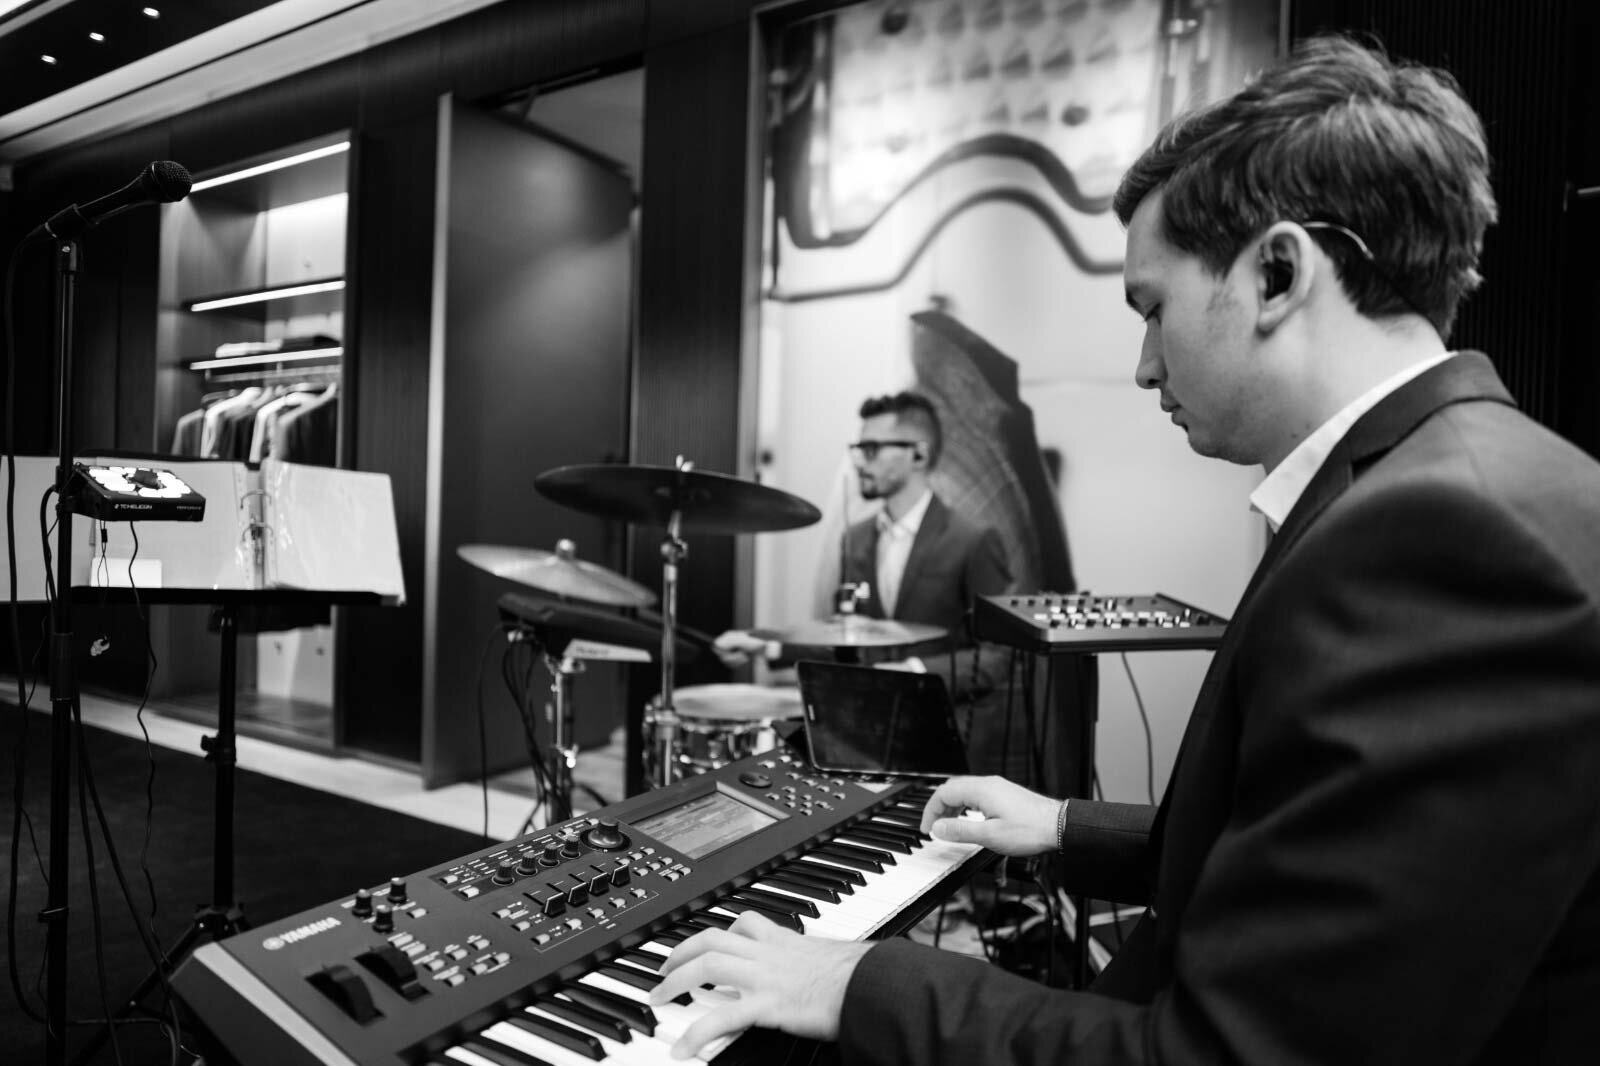 Limavera live band playing at the Brioni Munich Store 2019, © Cem Czerwionke